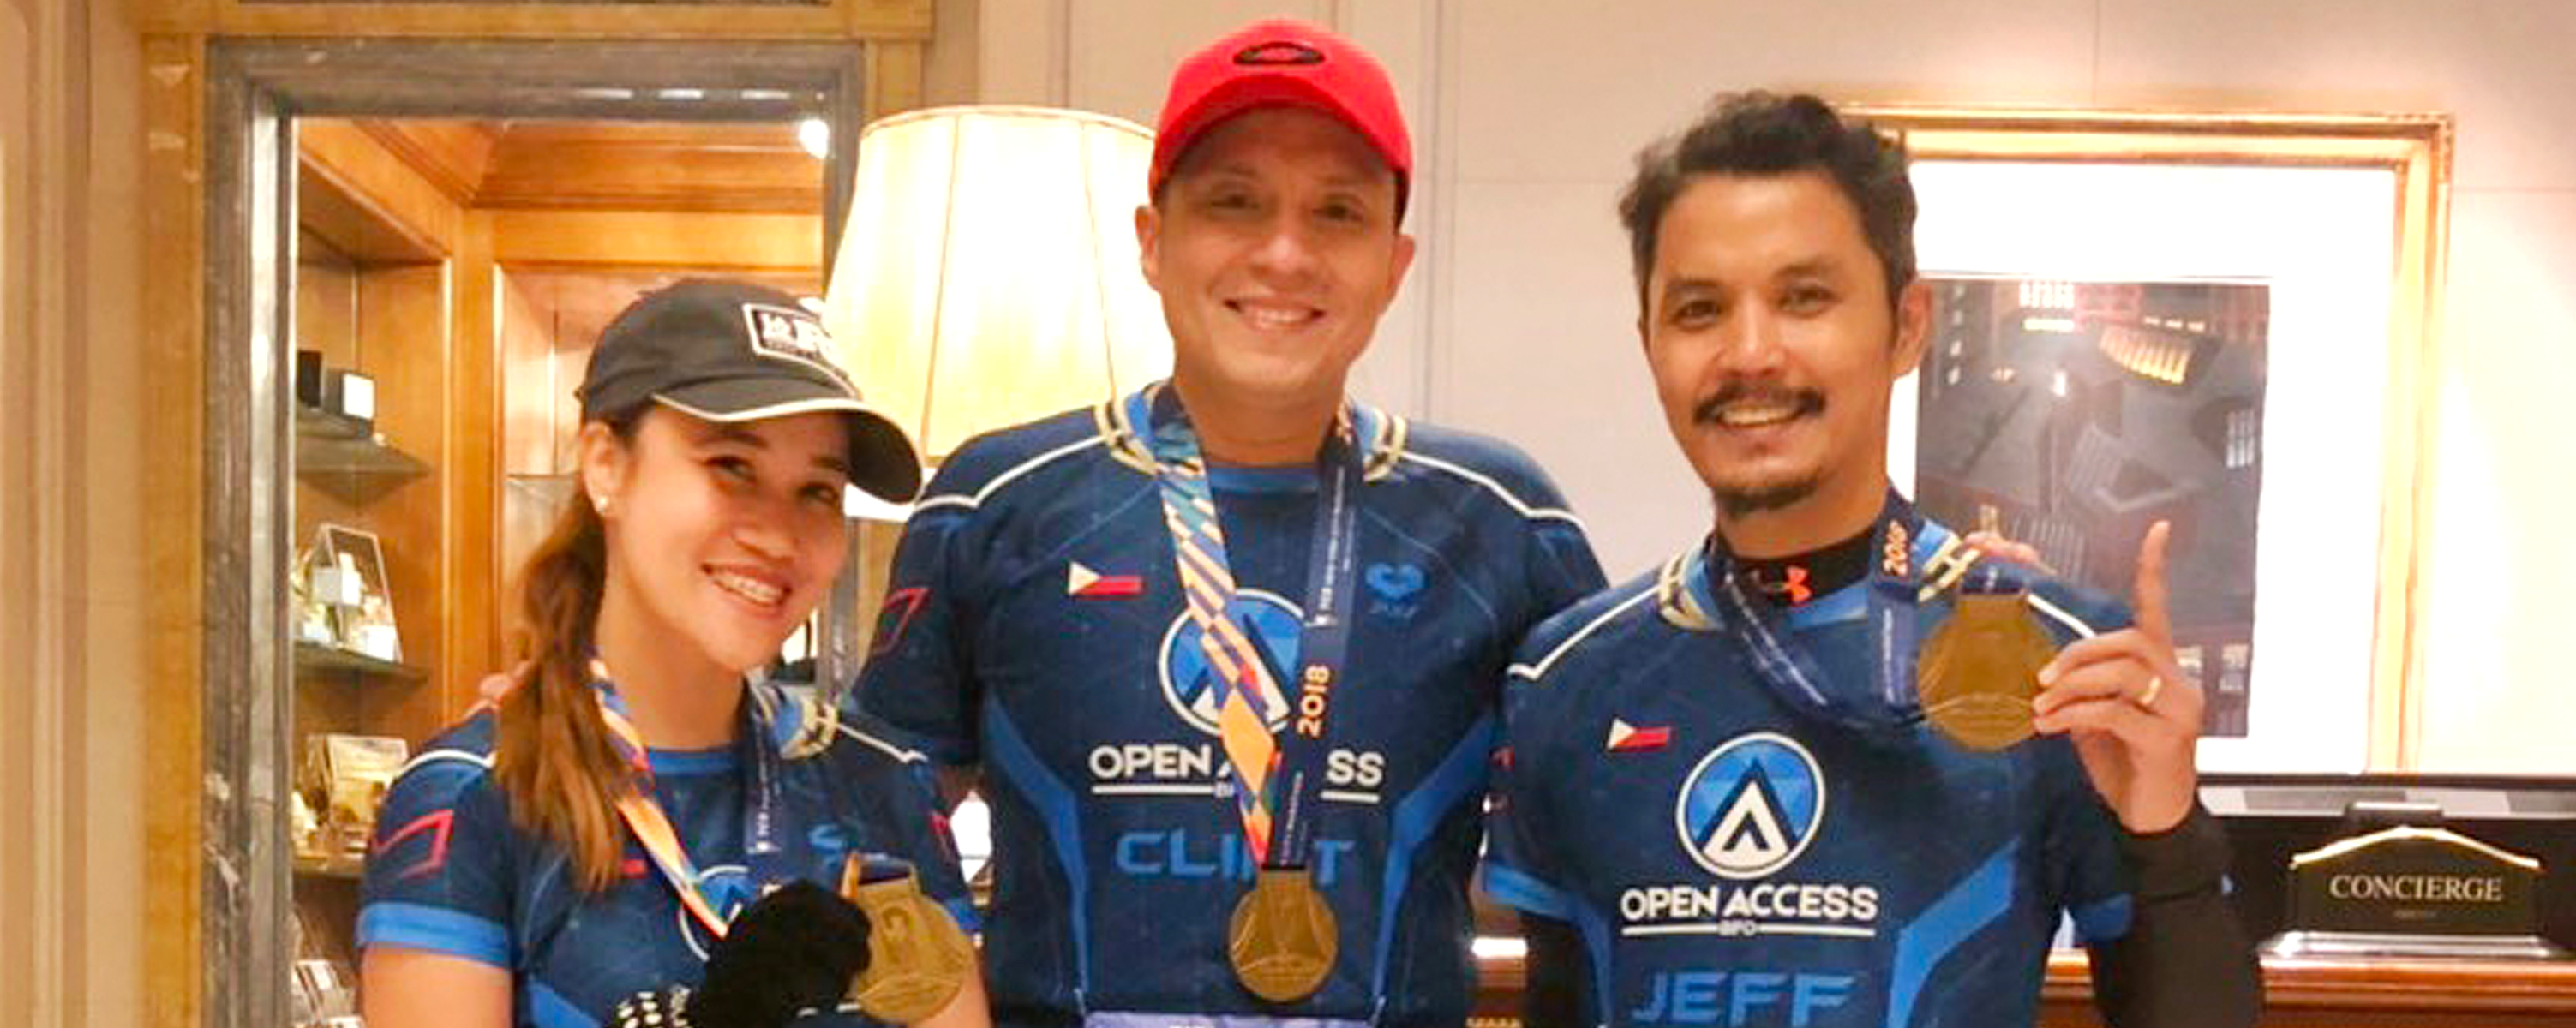 3 Open Access BPO employees finish TCS NYC Marathon 2018